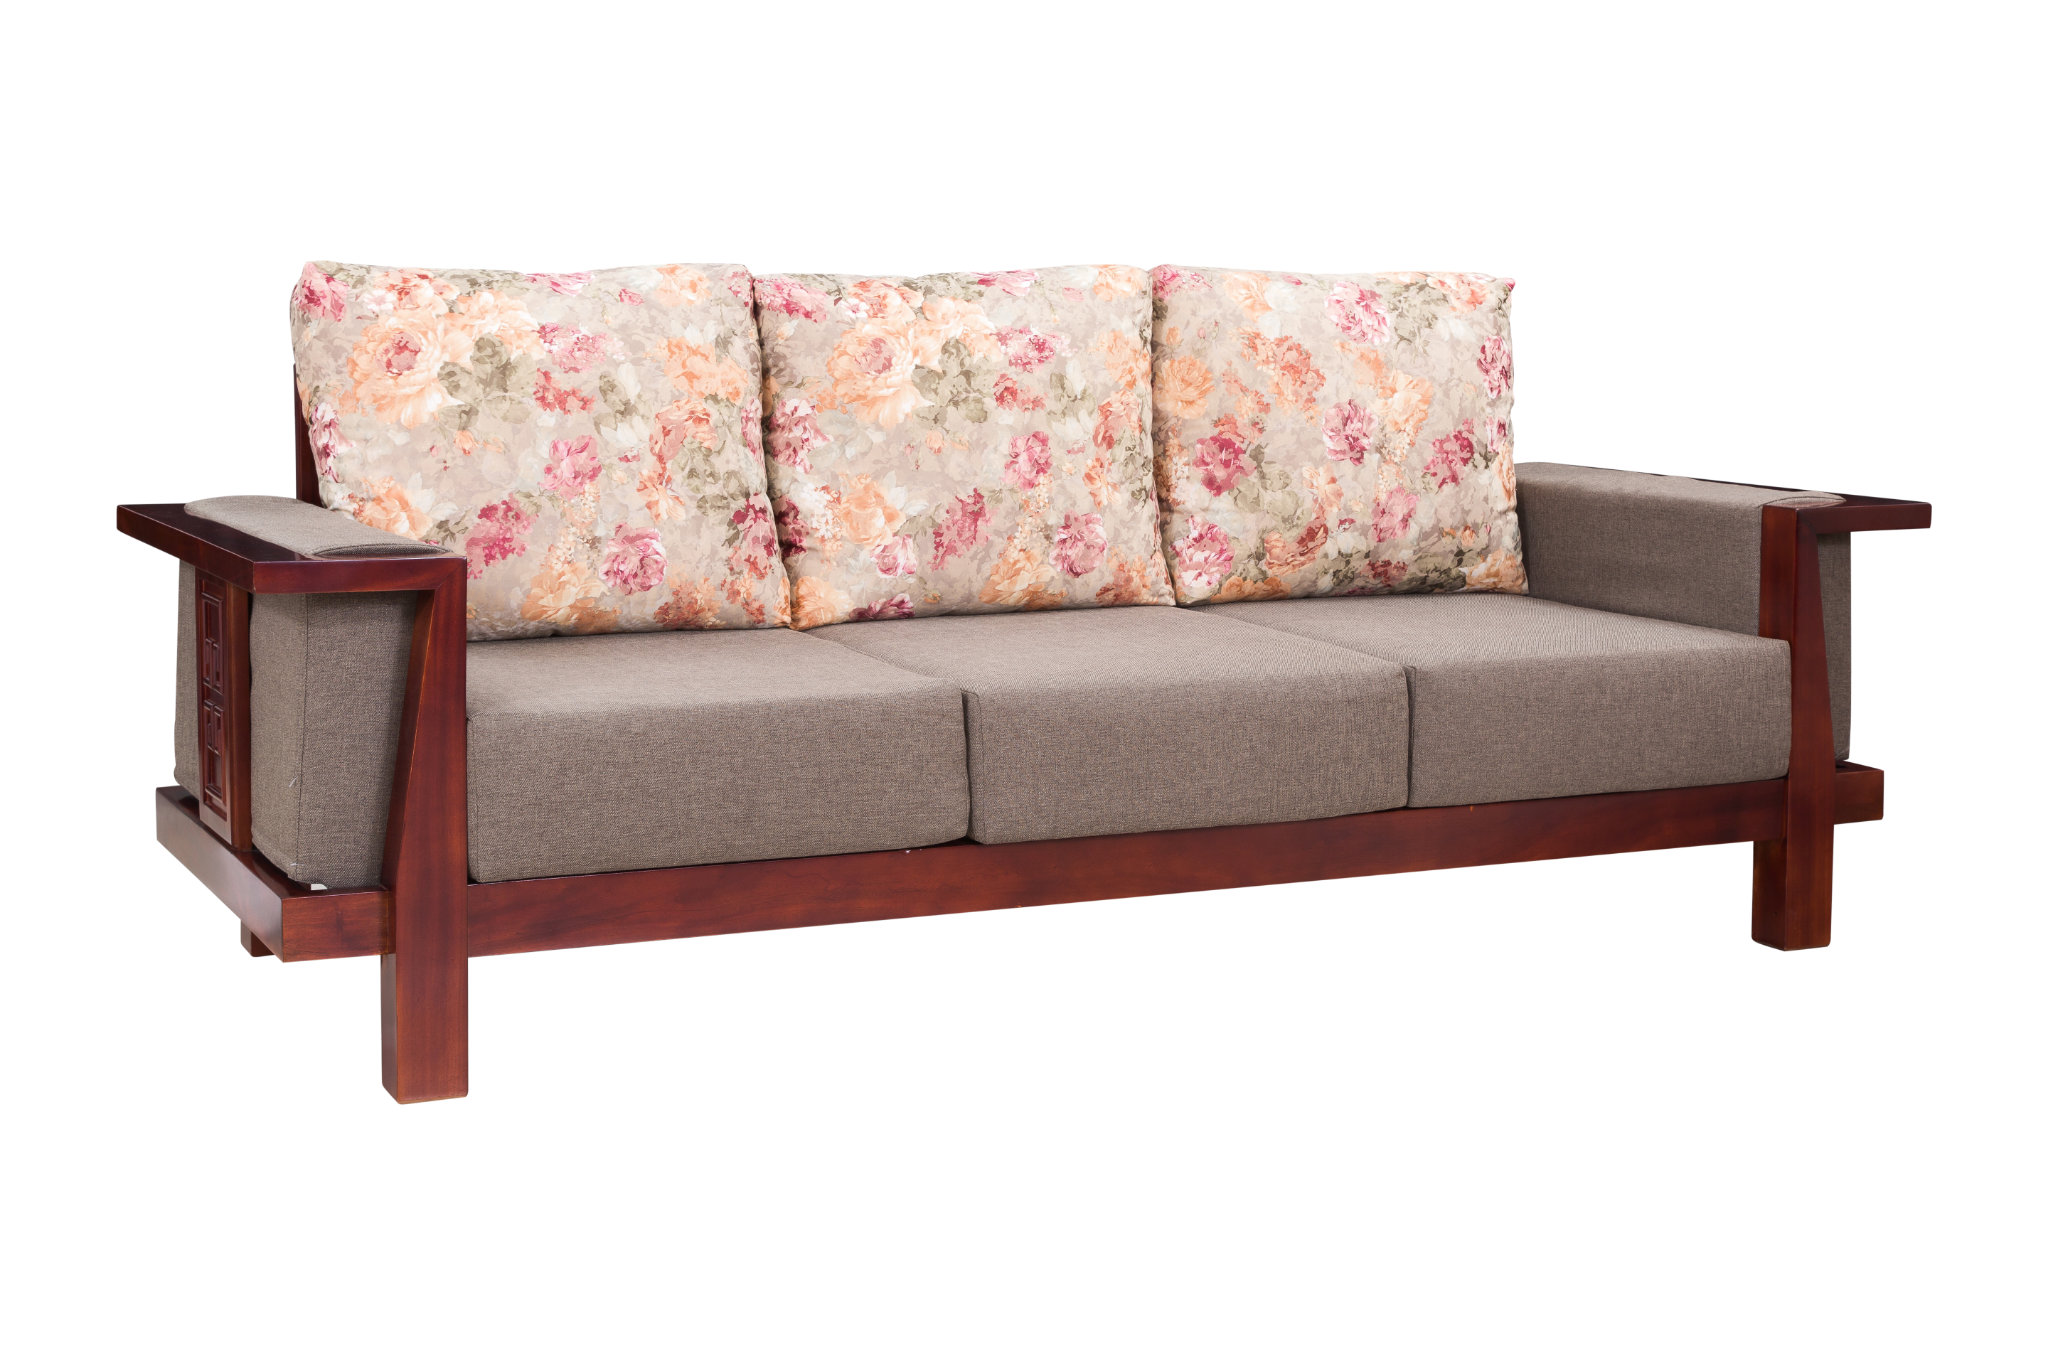 Sofa gỗ Song Hỷ 011X